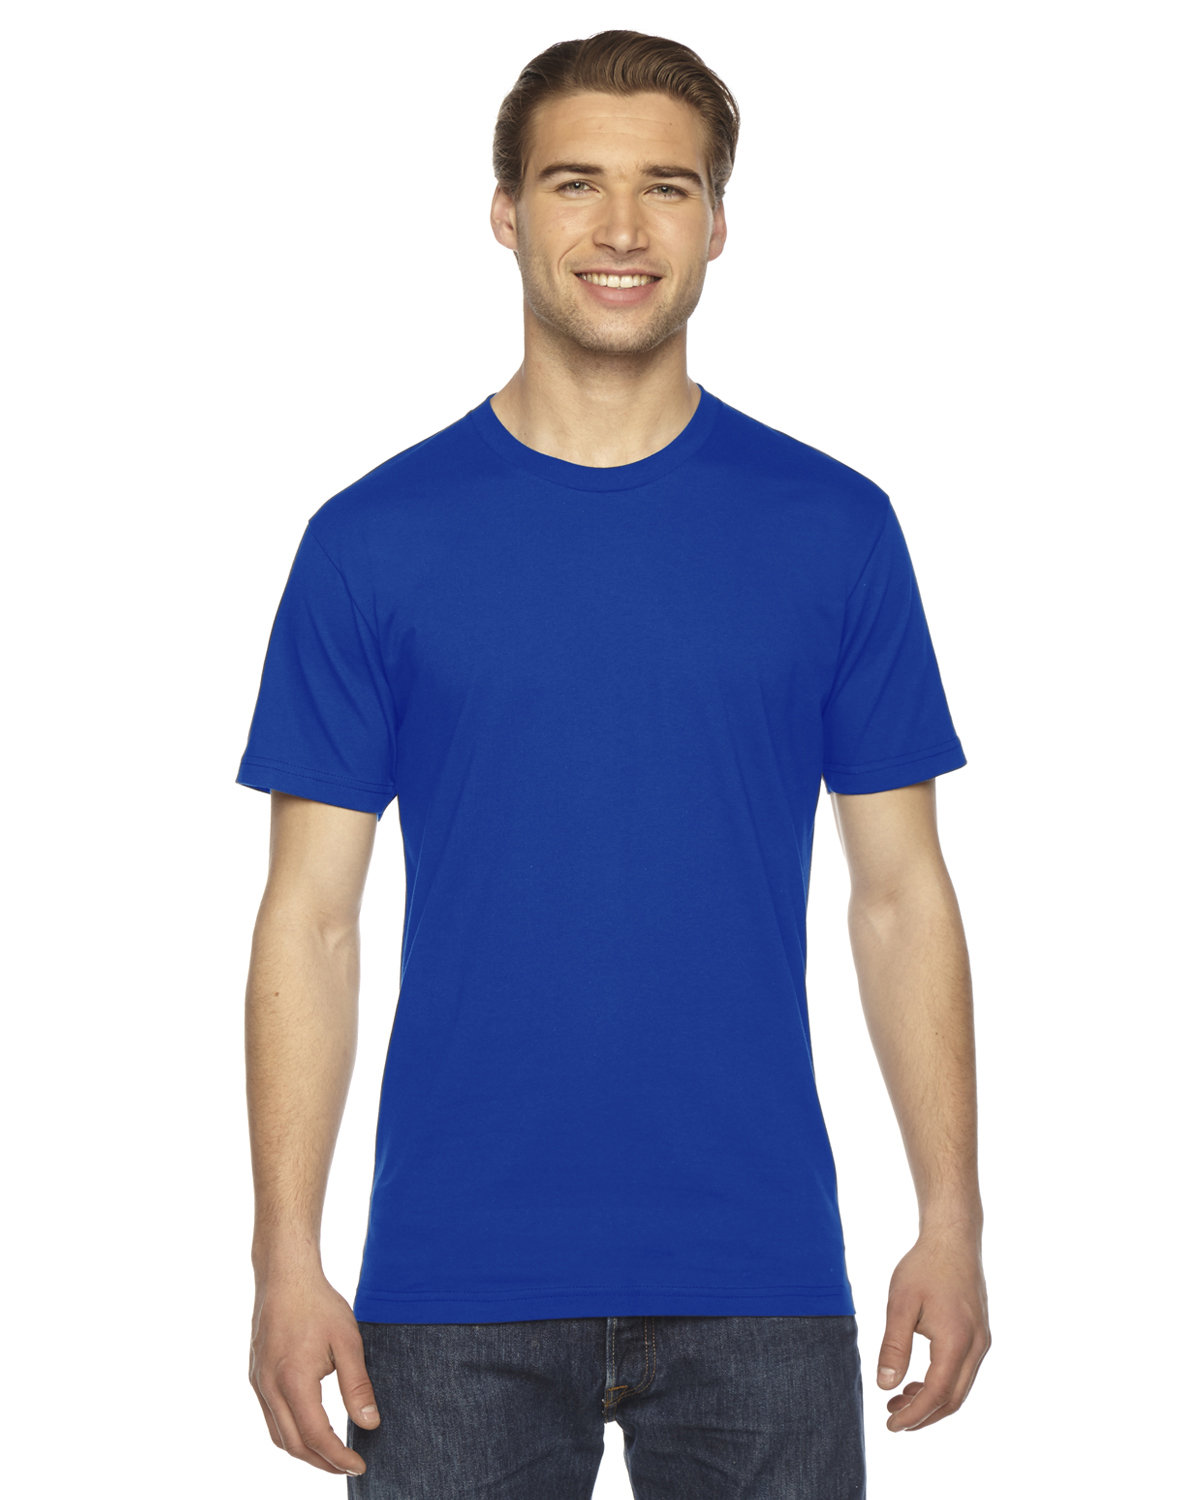 American Apparel Unisex Fine Jersey USA Made T-Shirt ROYAL BLUE